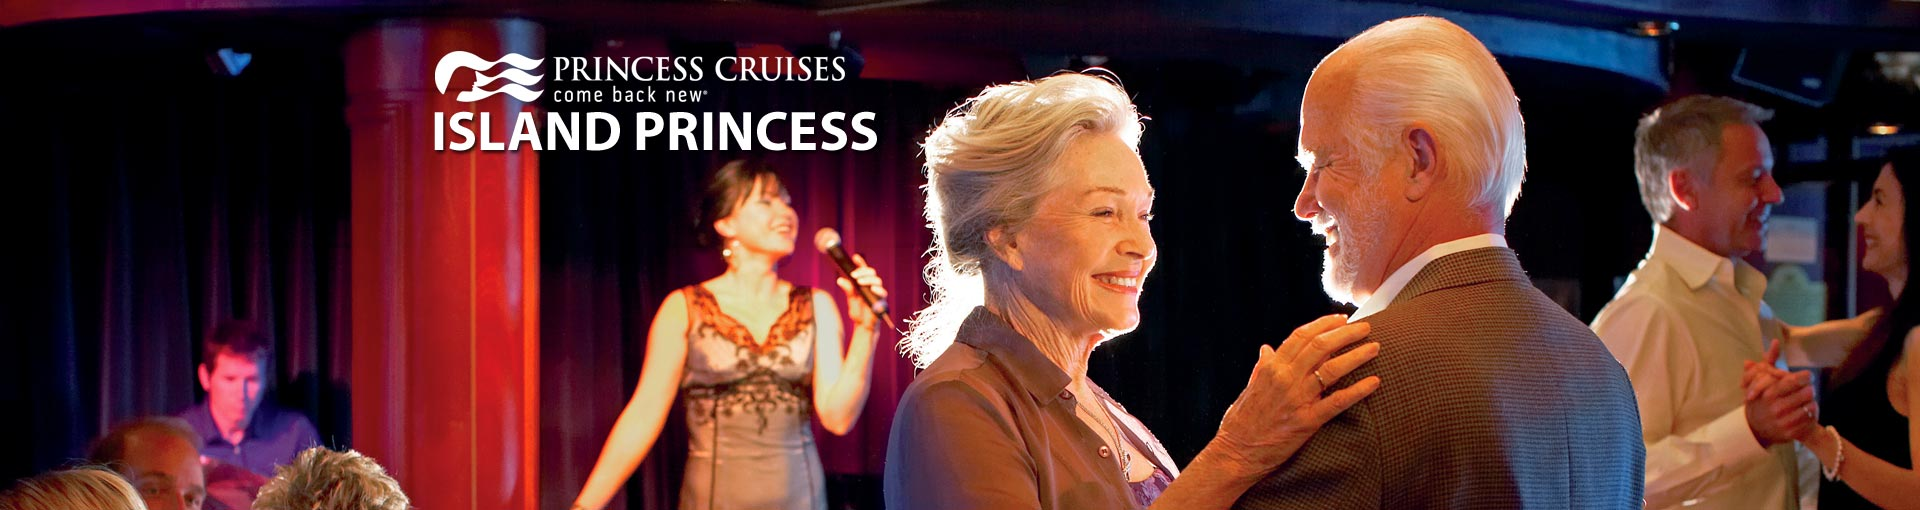 Princess Cruises Island Princess cruise ship